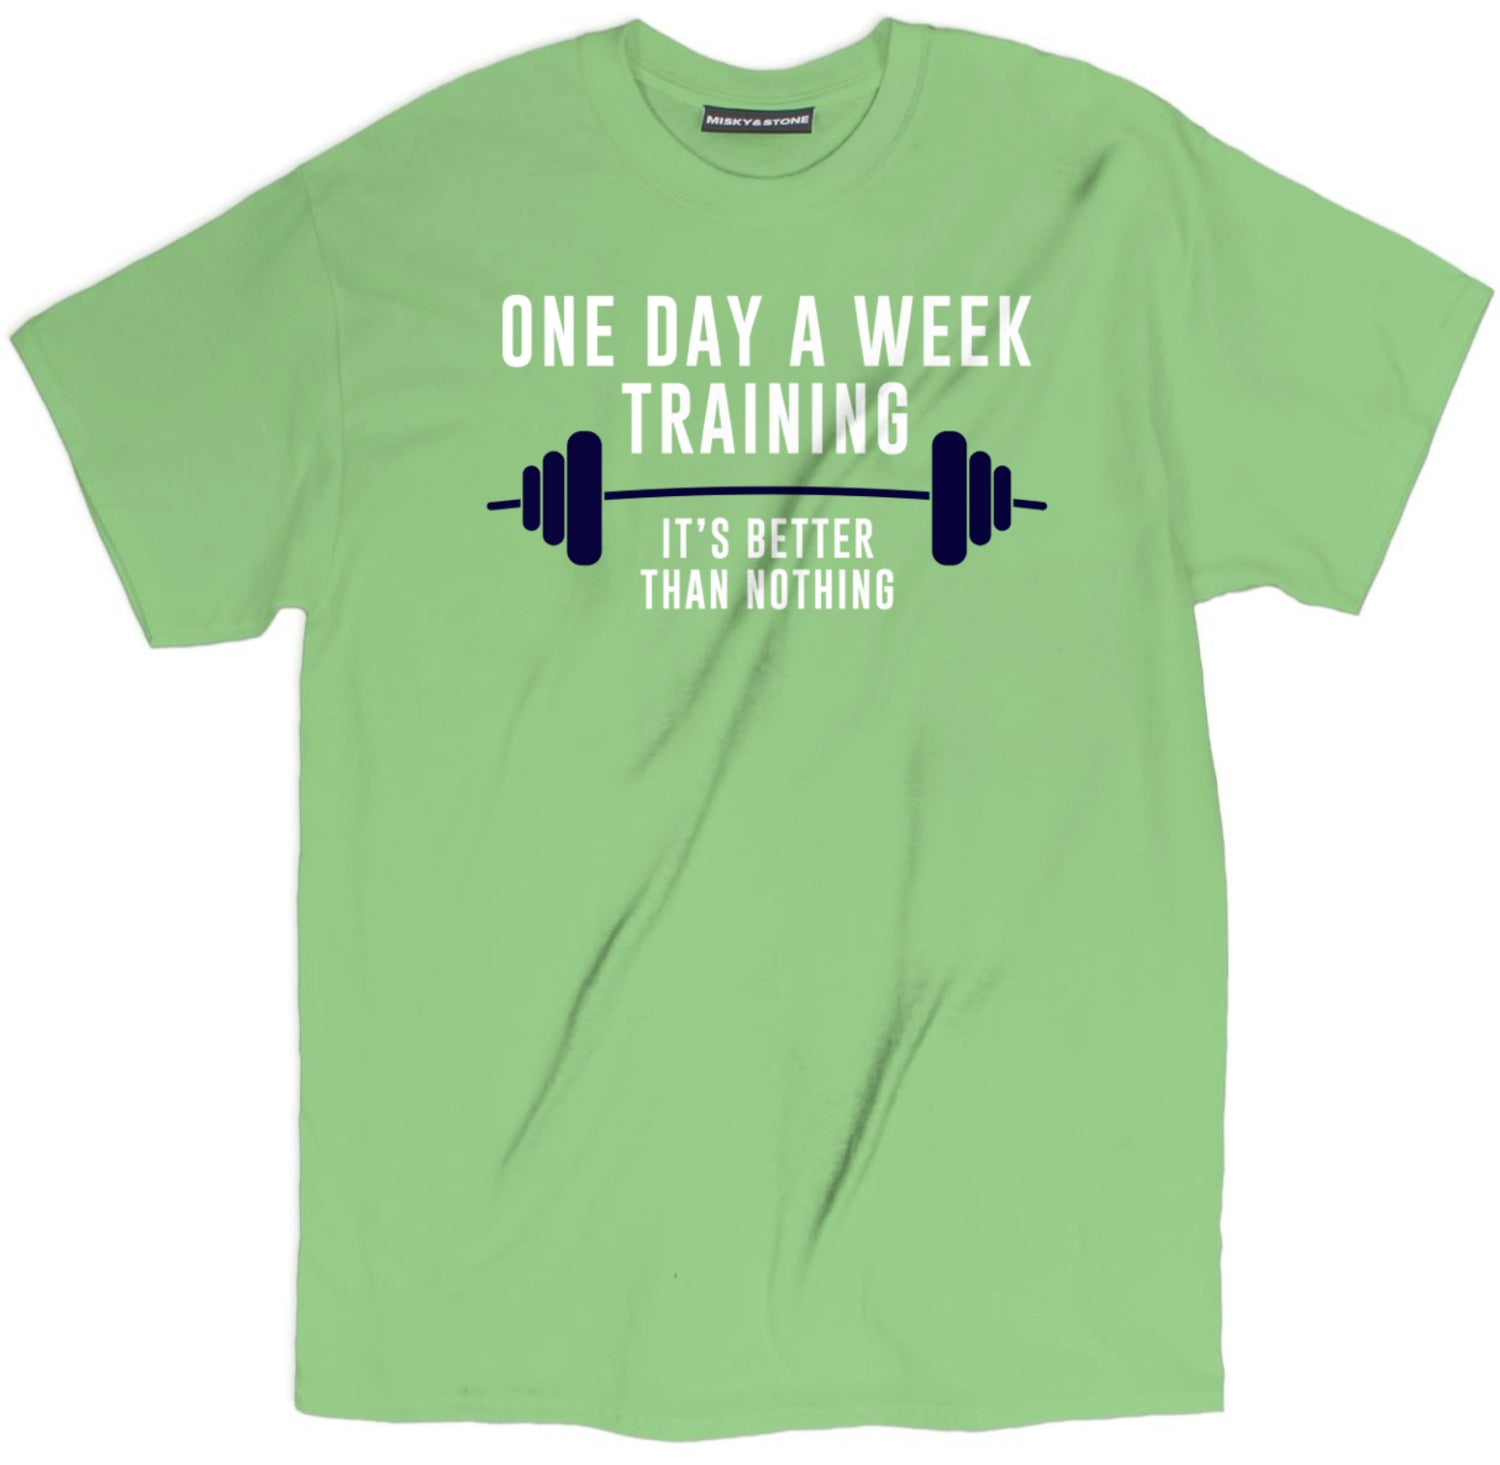 one day a week training its better than nothing t shirt, funny gym shirts, funny gym t shirts, workout shirts with sayings, funny fitness shirts, gym t shirts, funny workout shirts, workout shirts, funny workout clothes, workout t shirts,